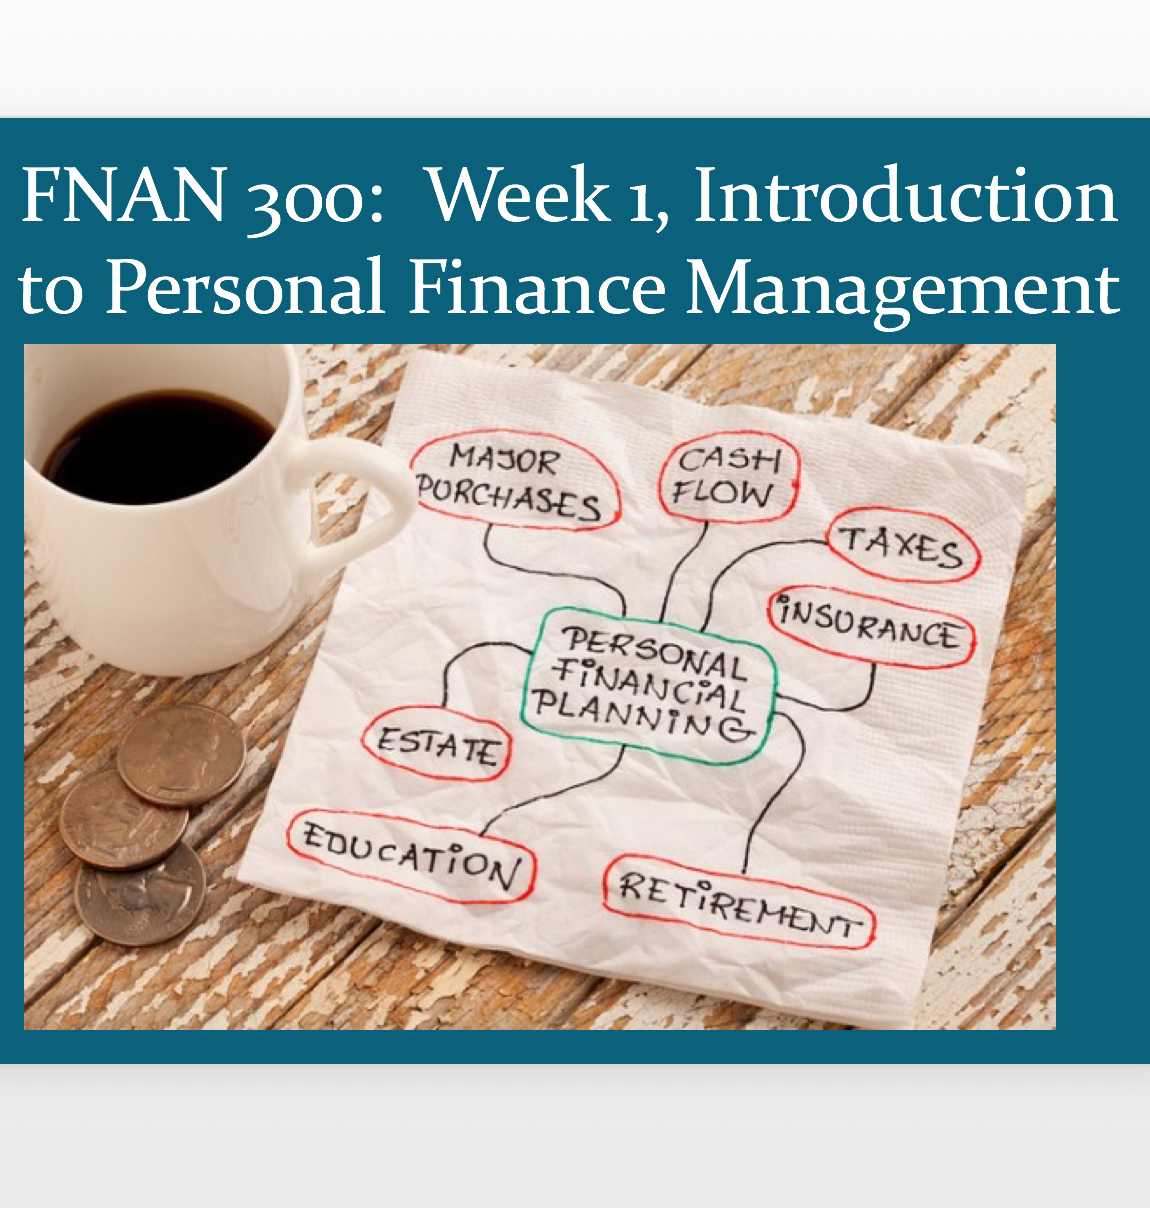 The students learned personal finance management by applying the concepts we learned in class to their daily lives.